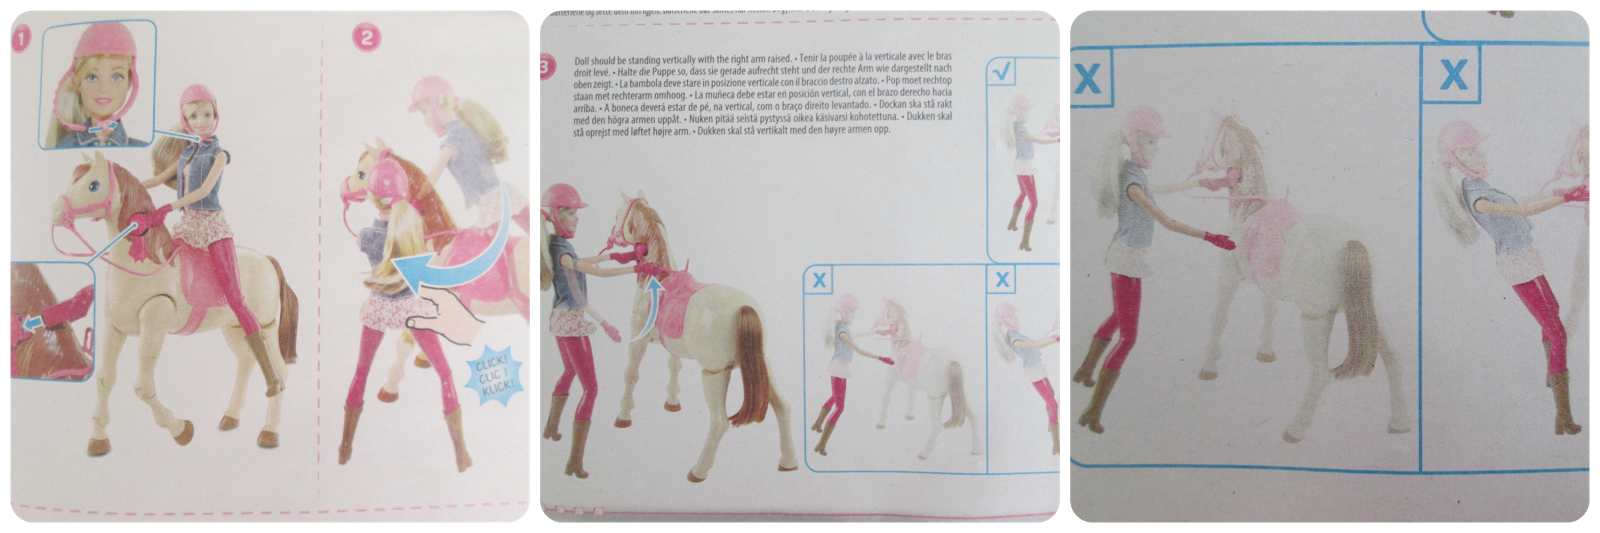 Barbie Saddle 'n Ride Instructions